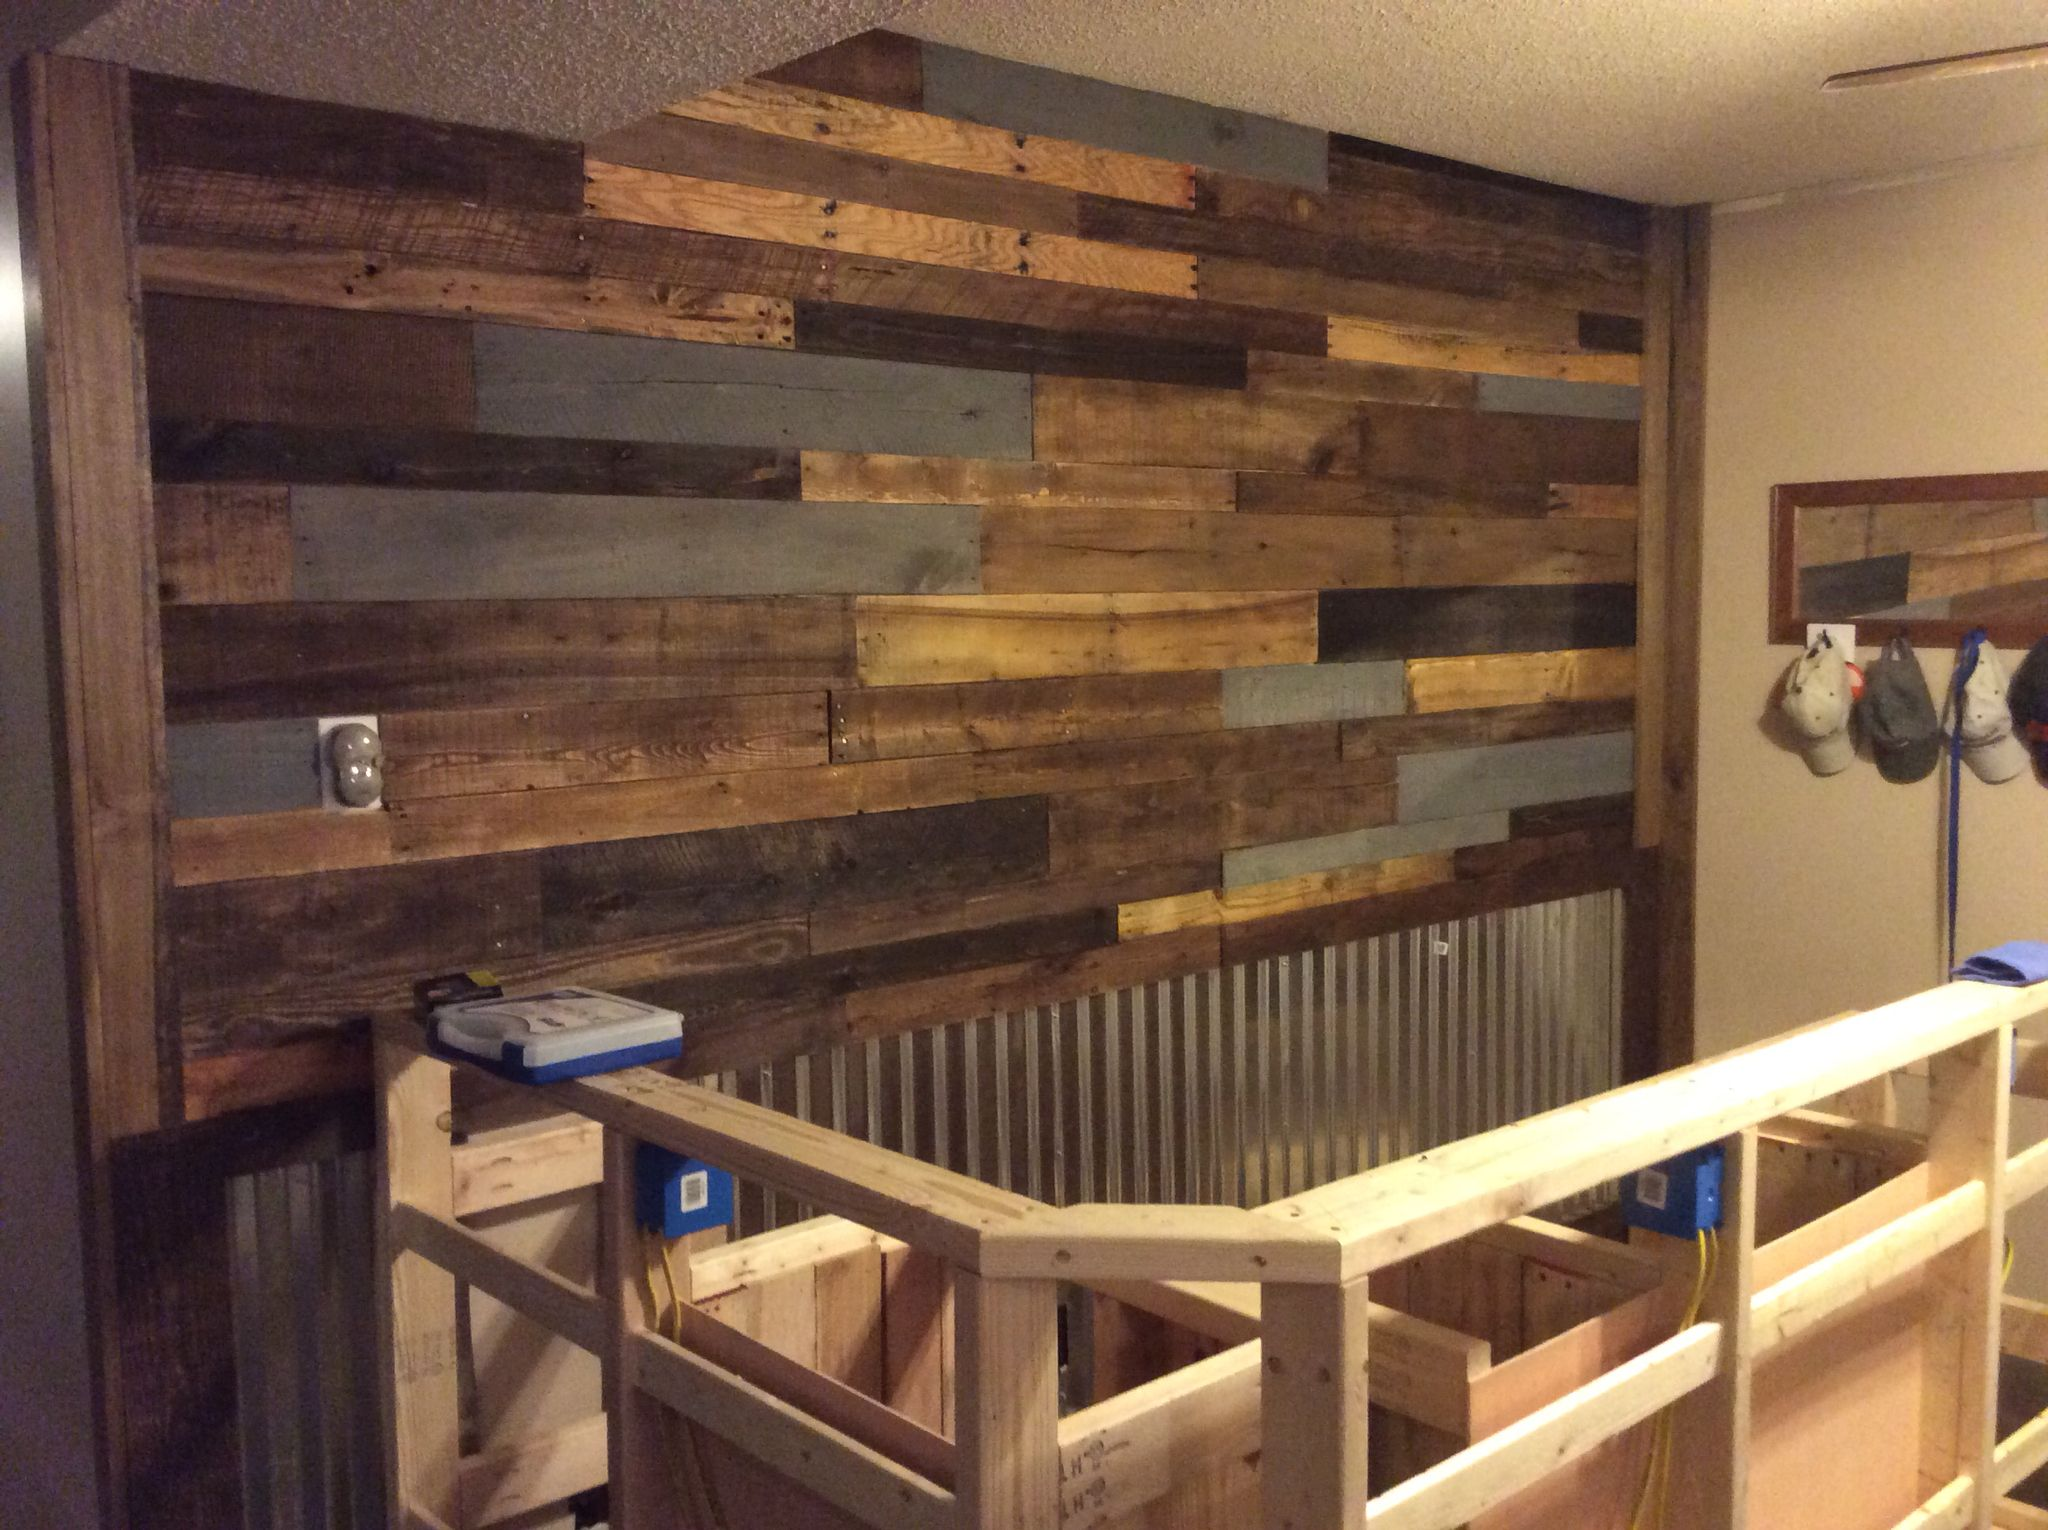 The Pallet Wall Behind The Bar Is Done One Step Closer